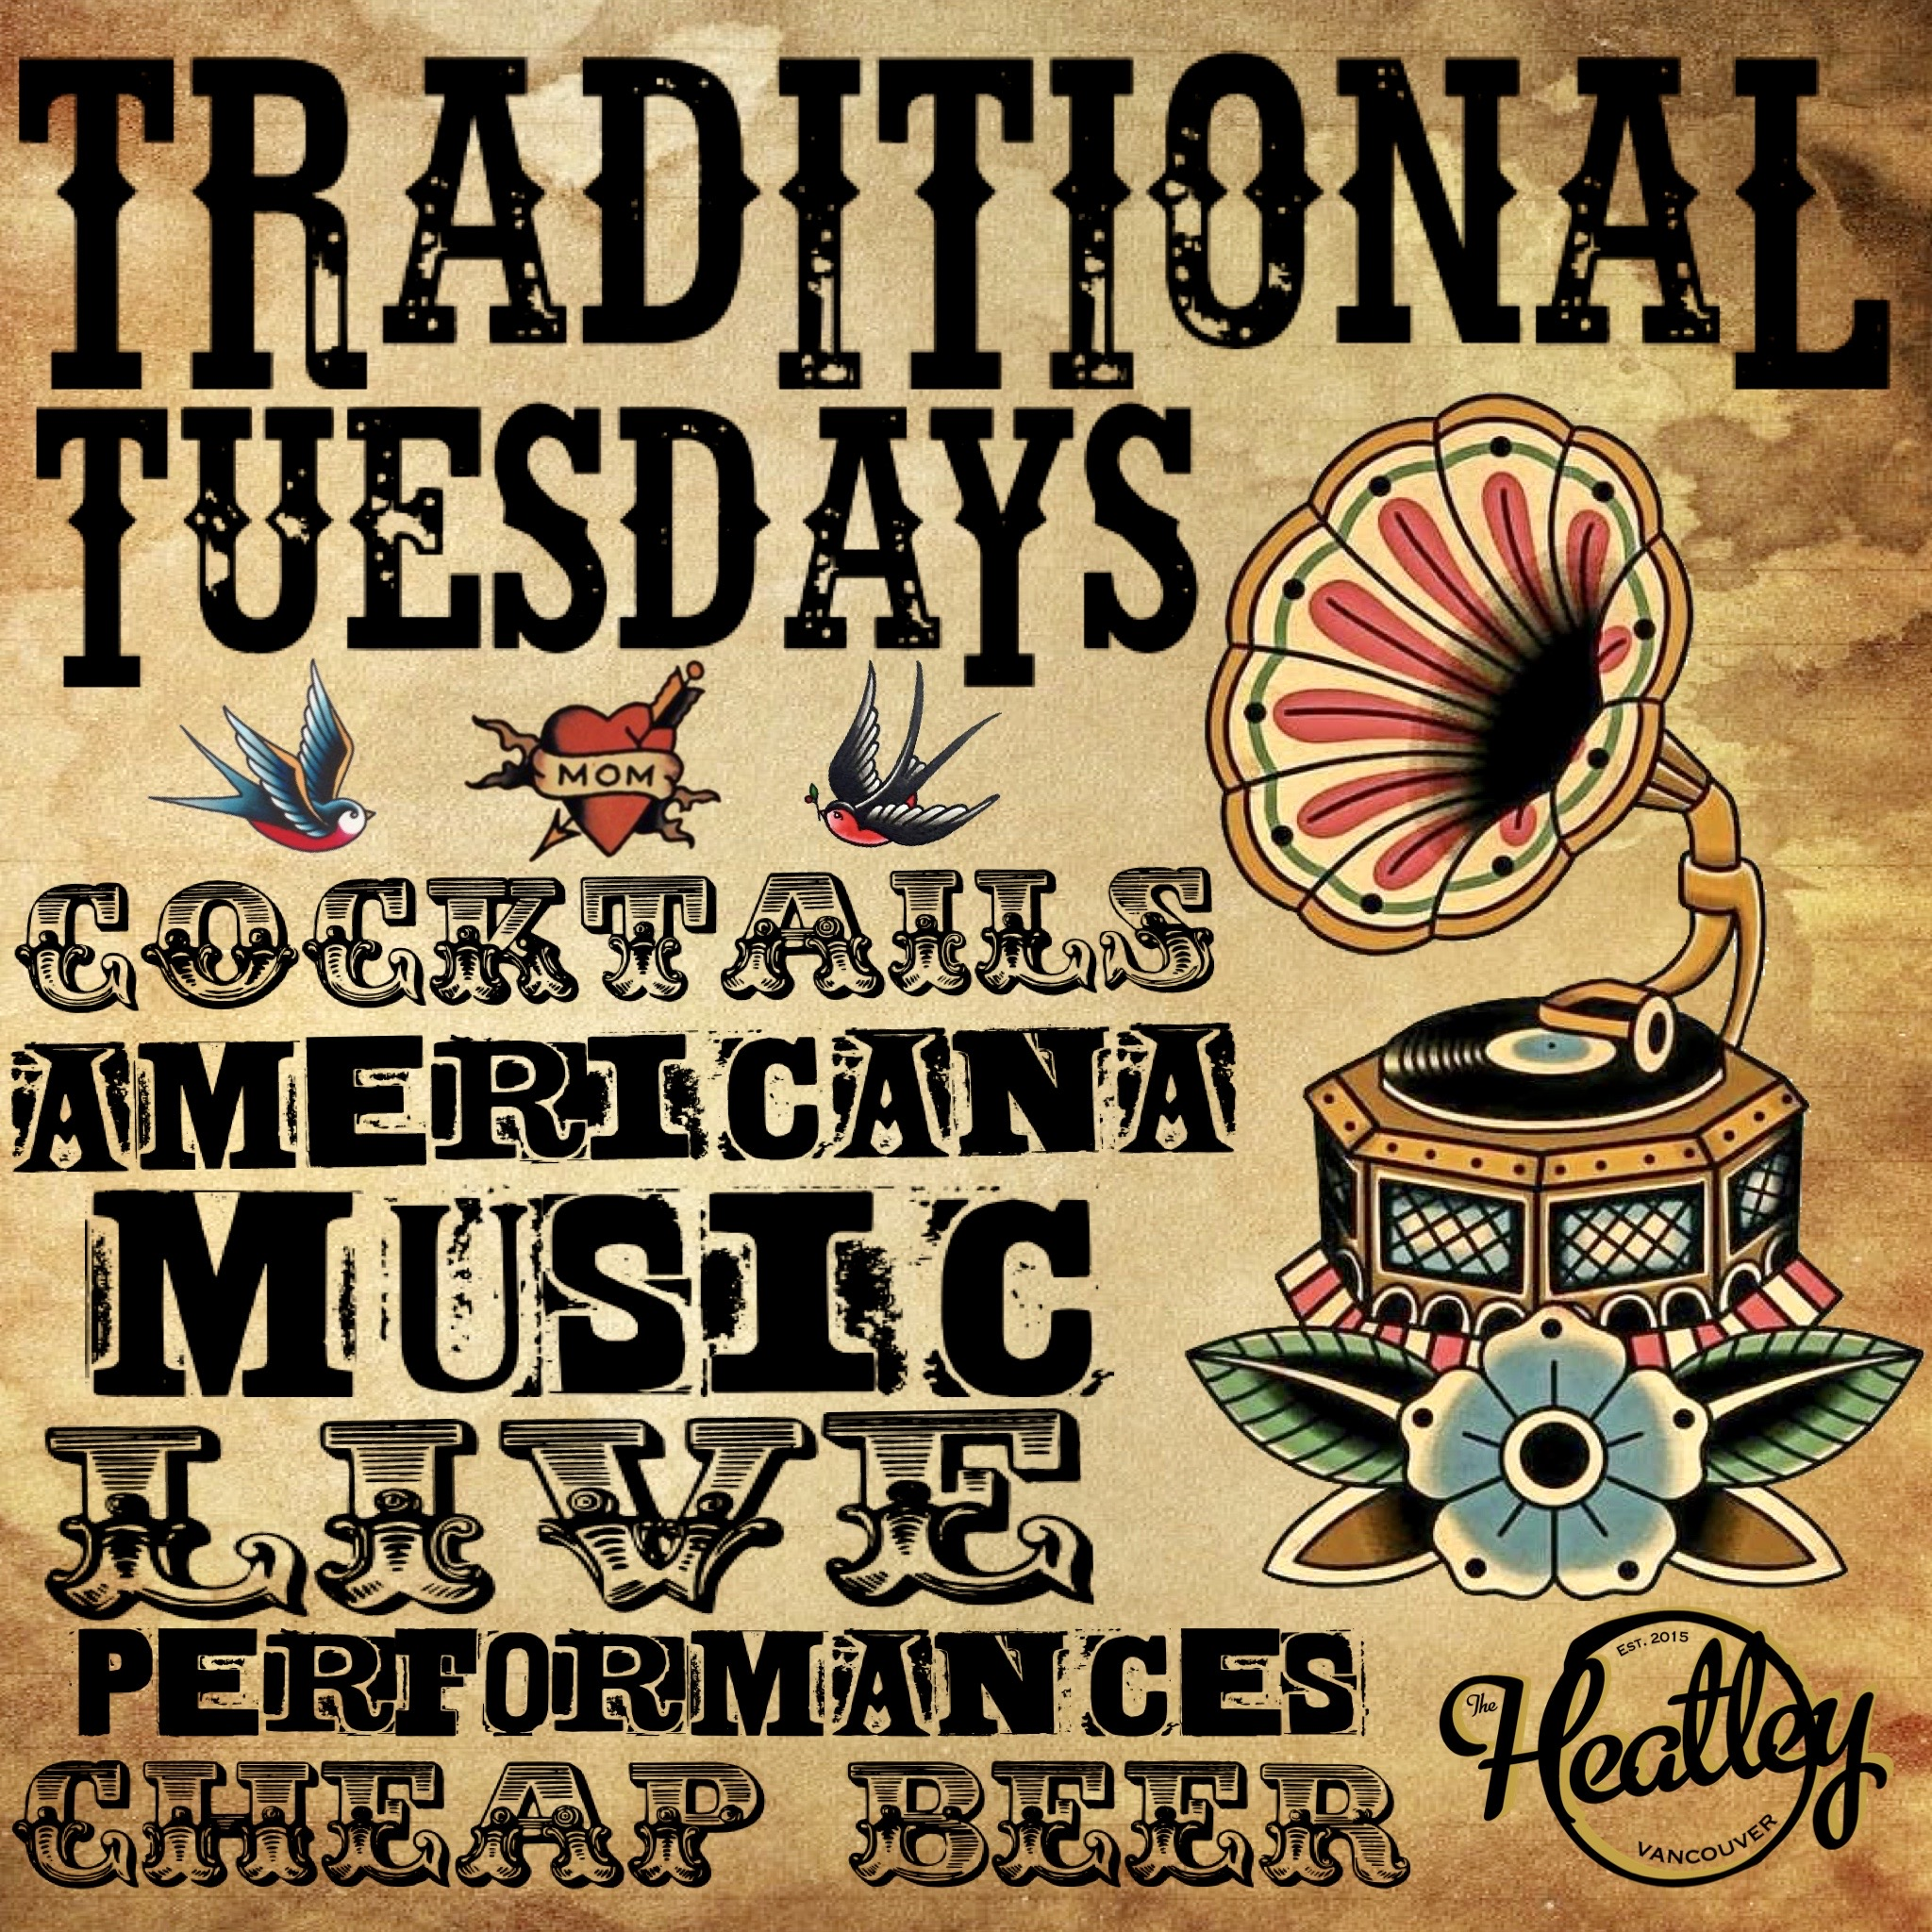 Traditional Tuesday's tonight @theheatley696 Old time tunes on the phonograph and some LIVE MUSIC from Heatley newcomer and roots musician Josh Laird @openbook_pokerface 9pm